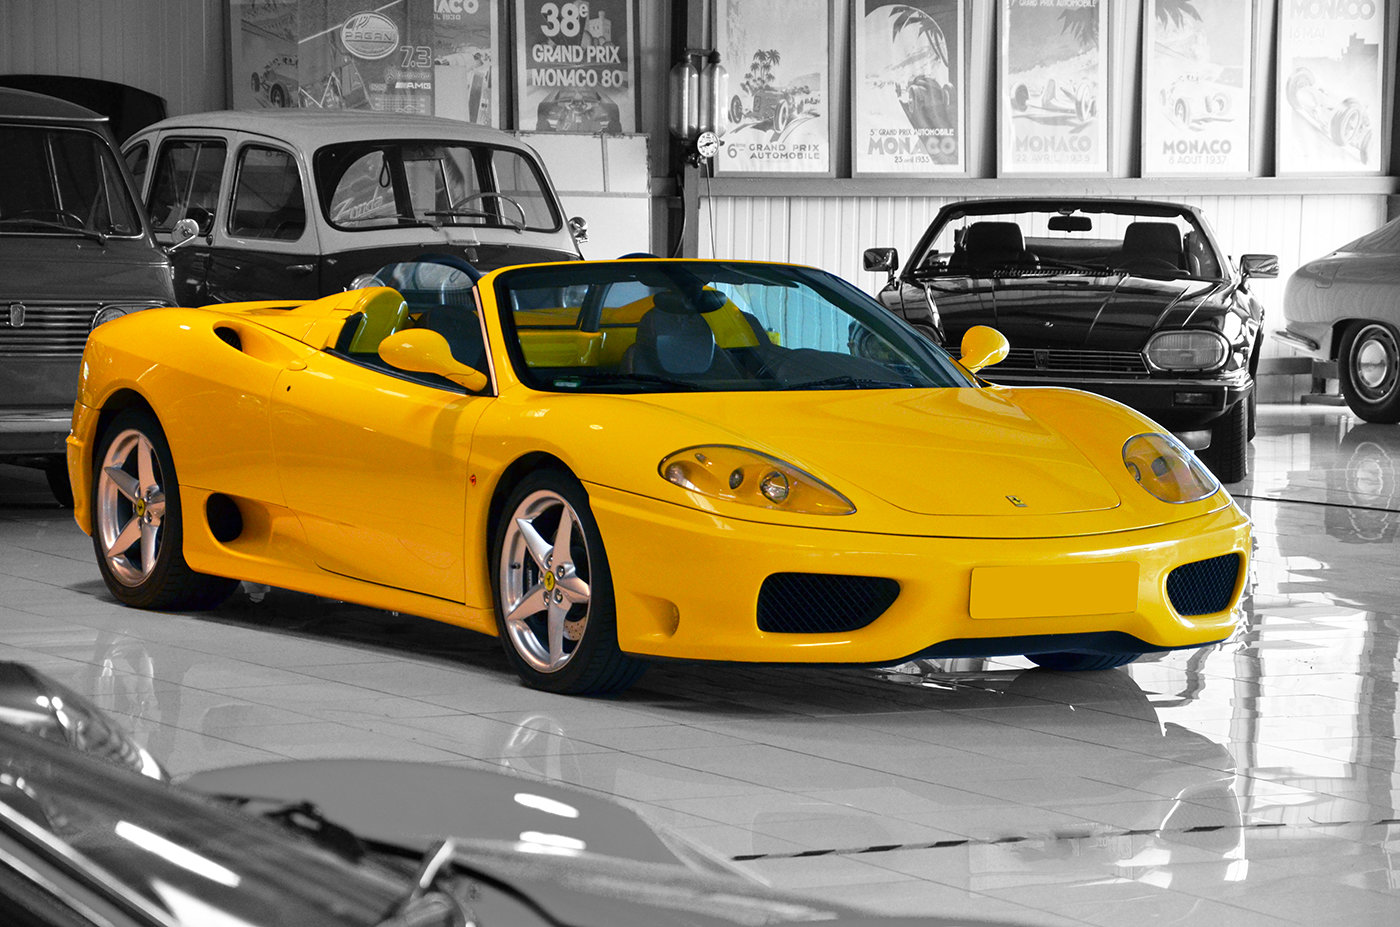 2001 - Ferrari 360 Spider Manual LHD Giallo Modena For Sale (picture 1 of 6)